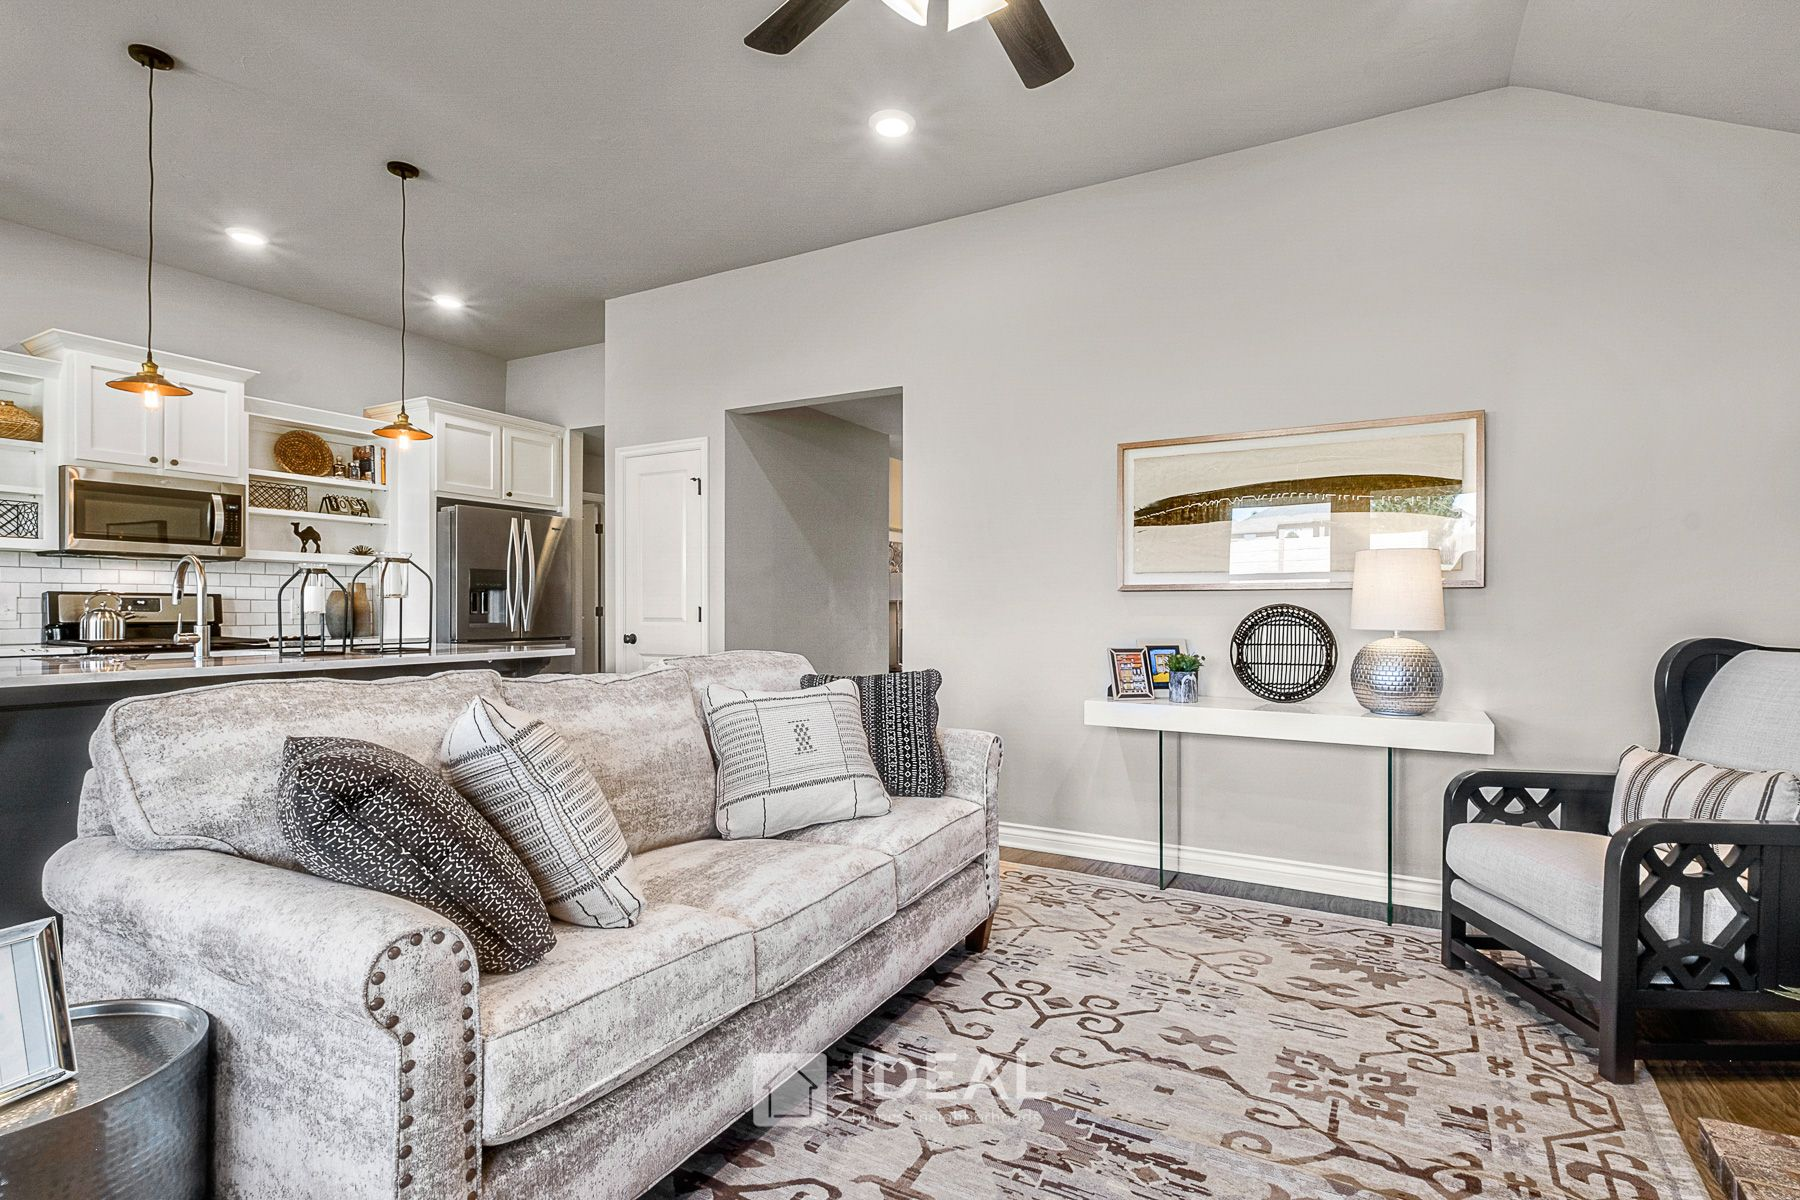 Living Area featured in the Dawson By Ideal Homes in Oklahoma City, OK